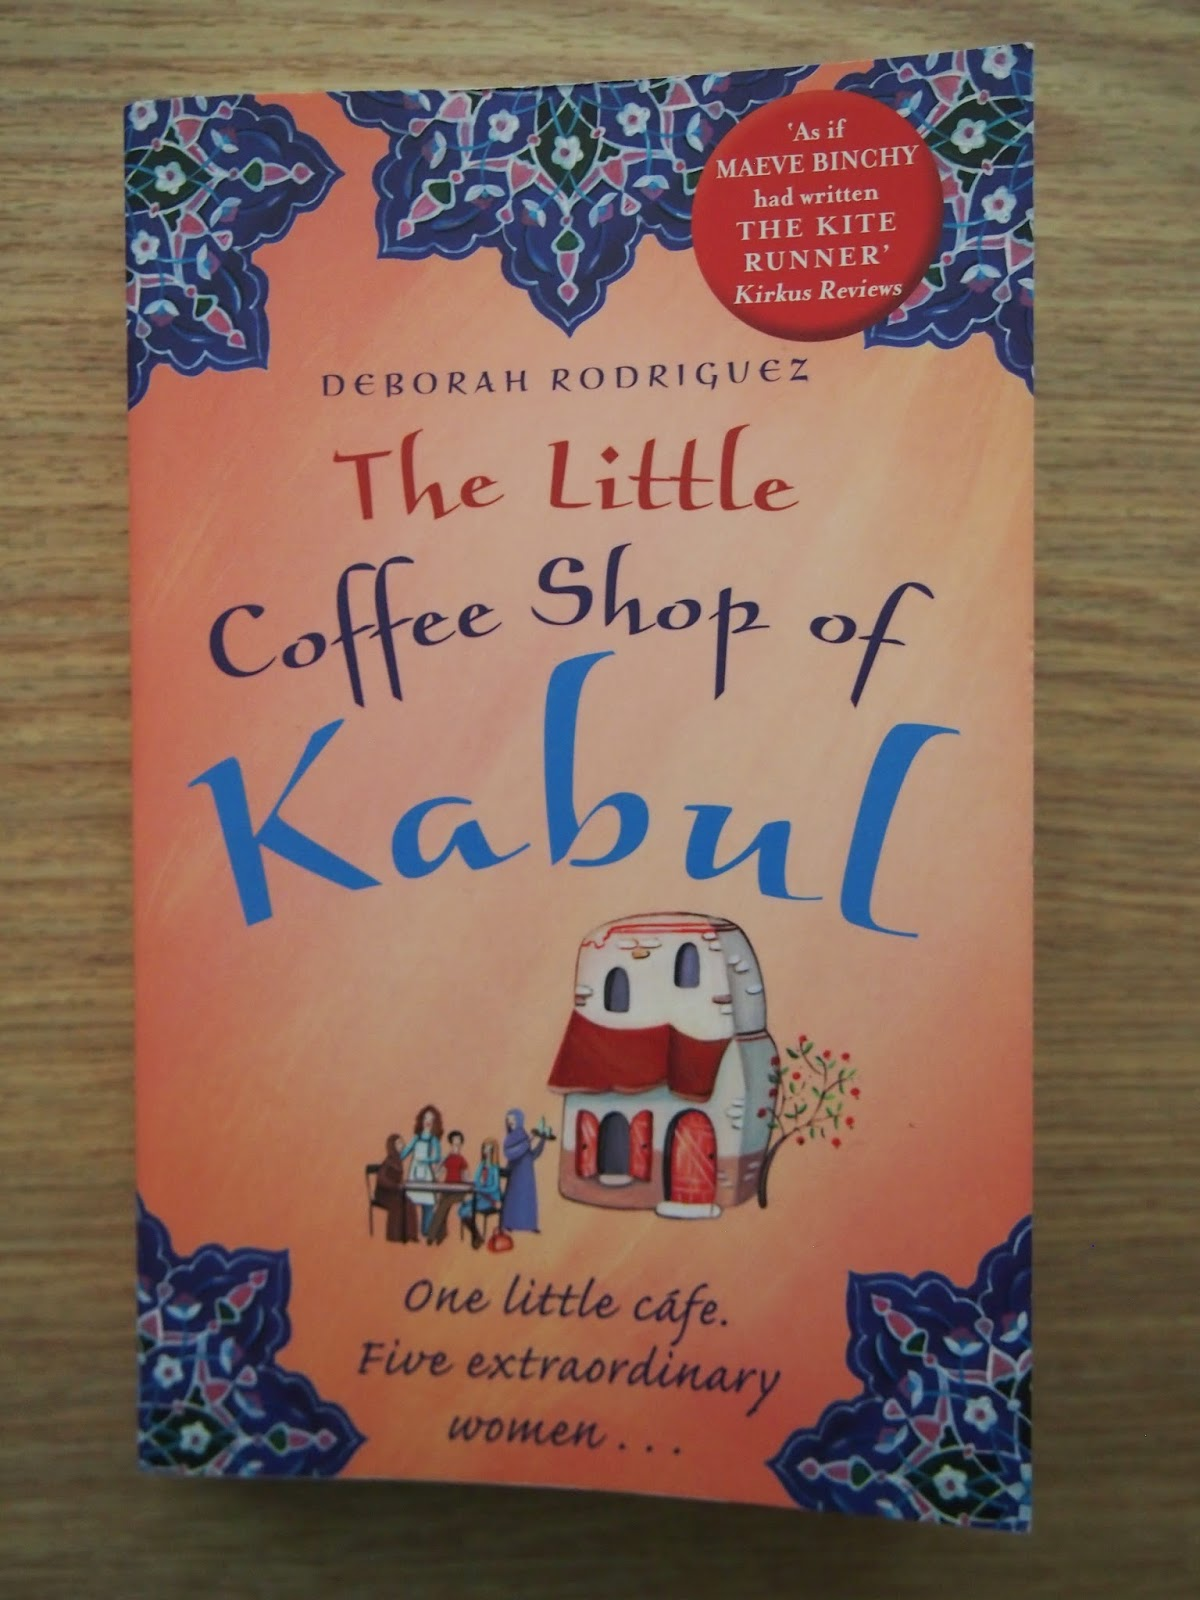 An image of the cover of the Little Coffee Shop of Kabul